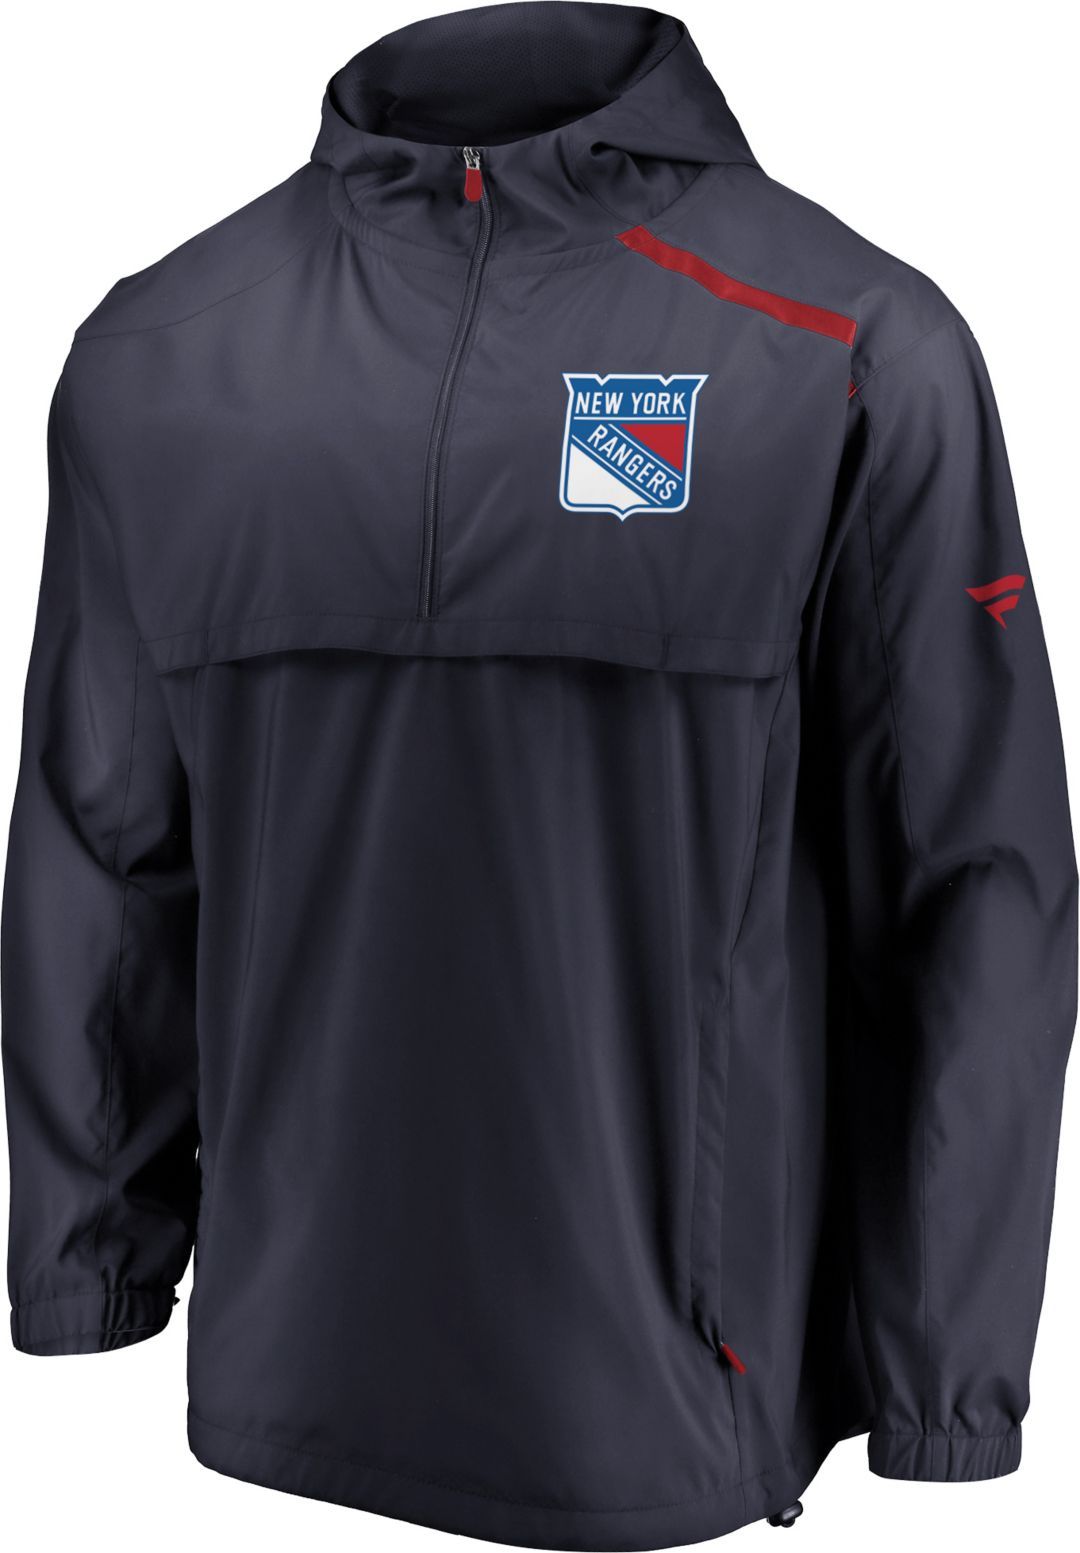 outlet store 5f0f6 03e3c NHL Men's New York Rangers Authentic Pro Navy Anorak Jacket